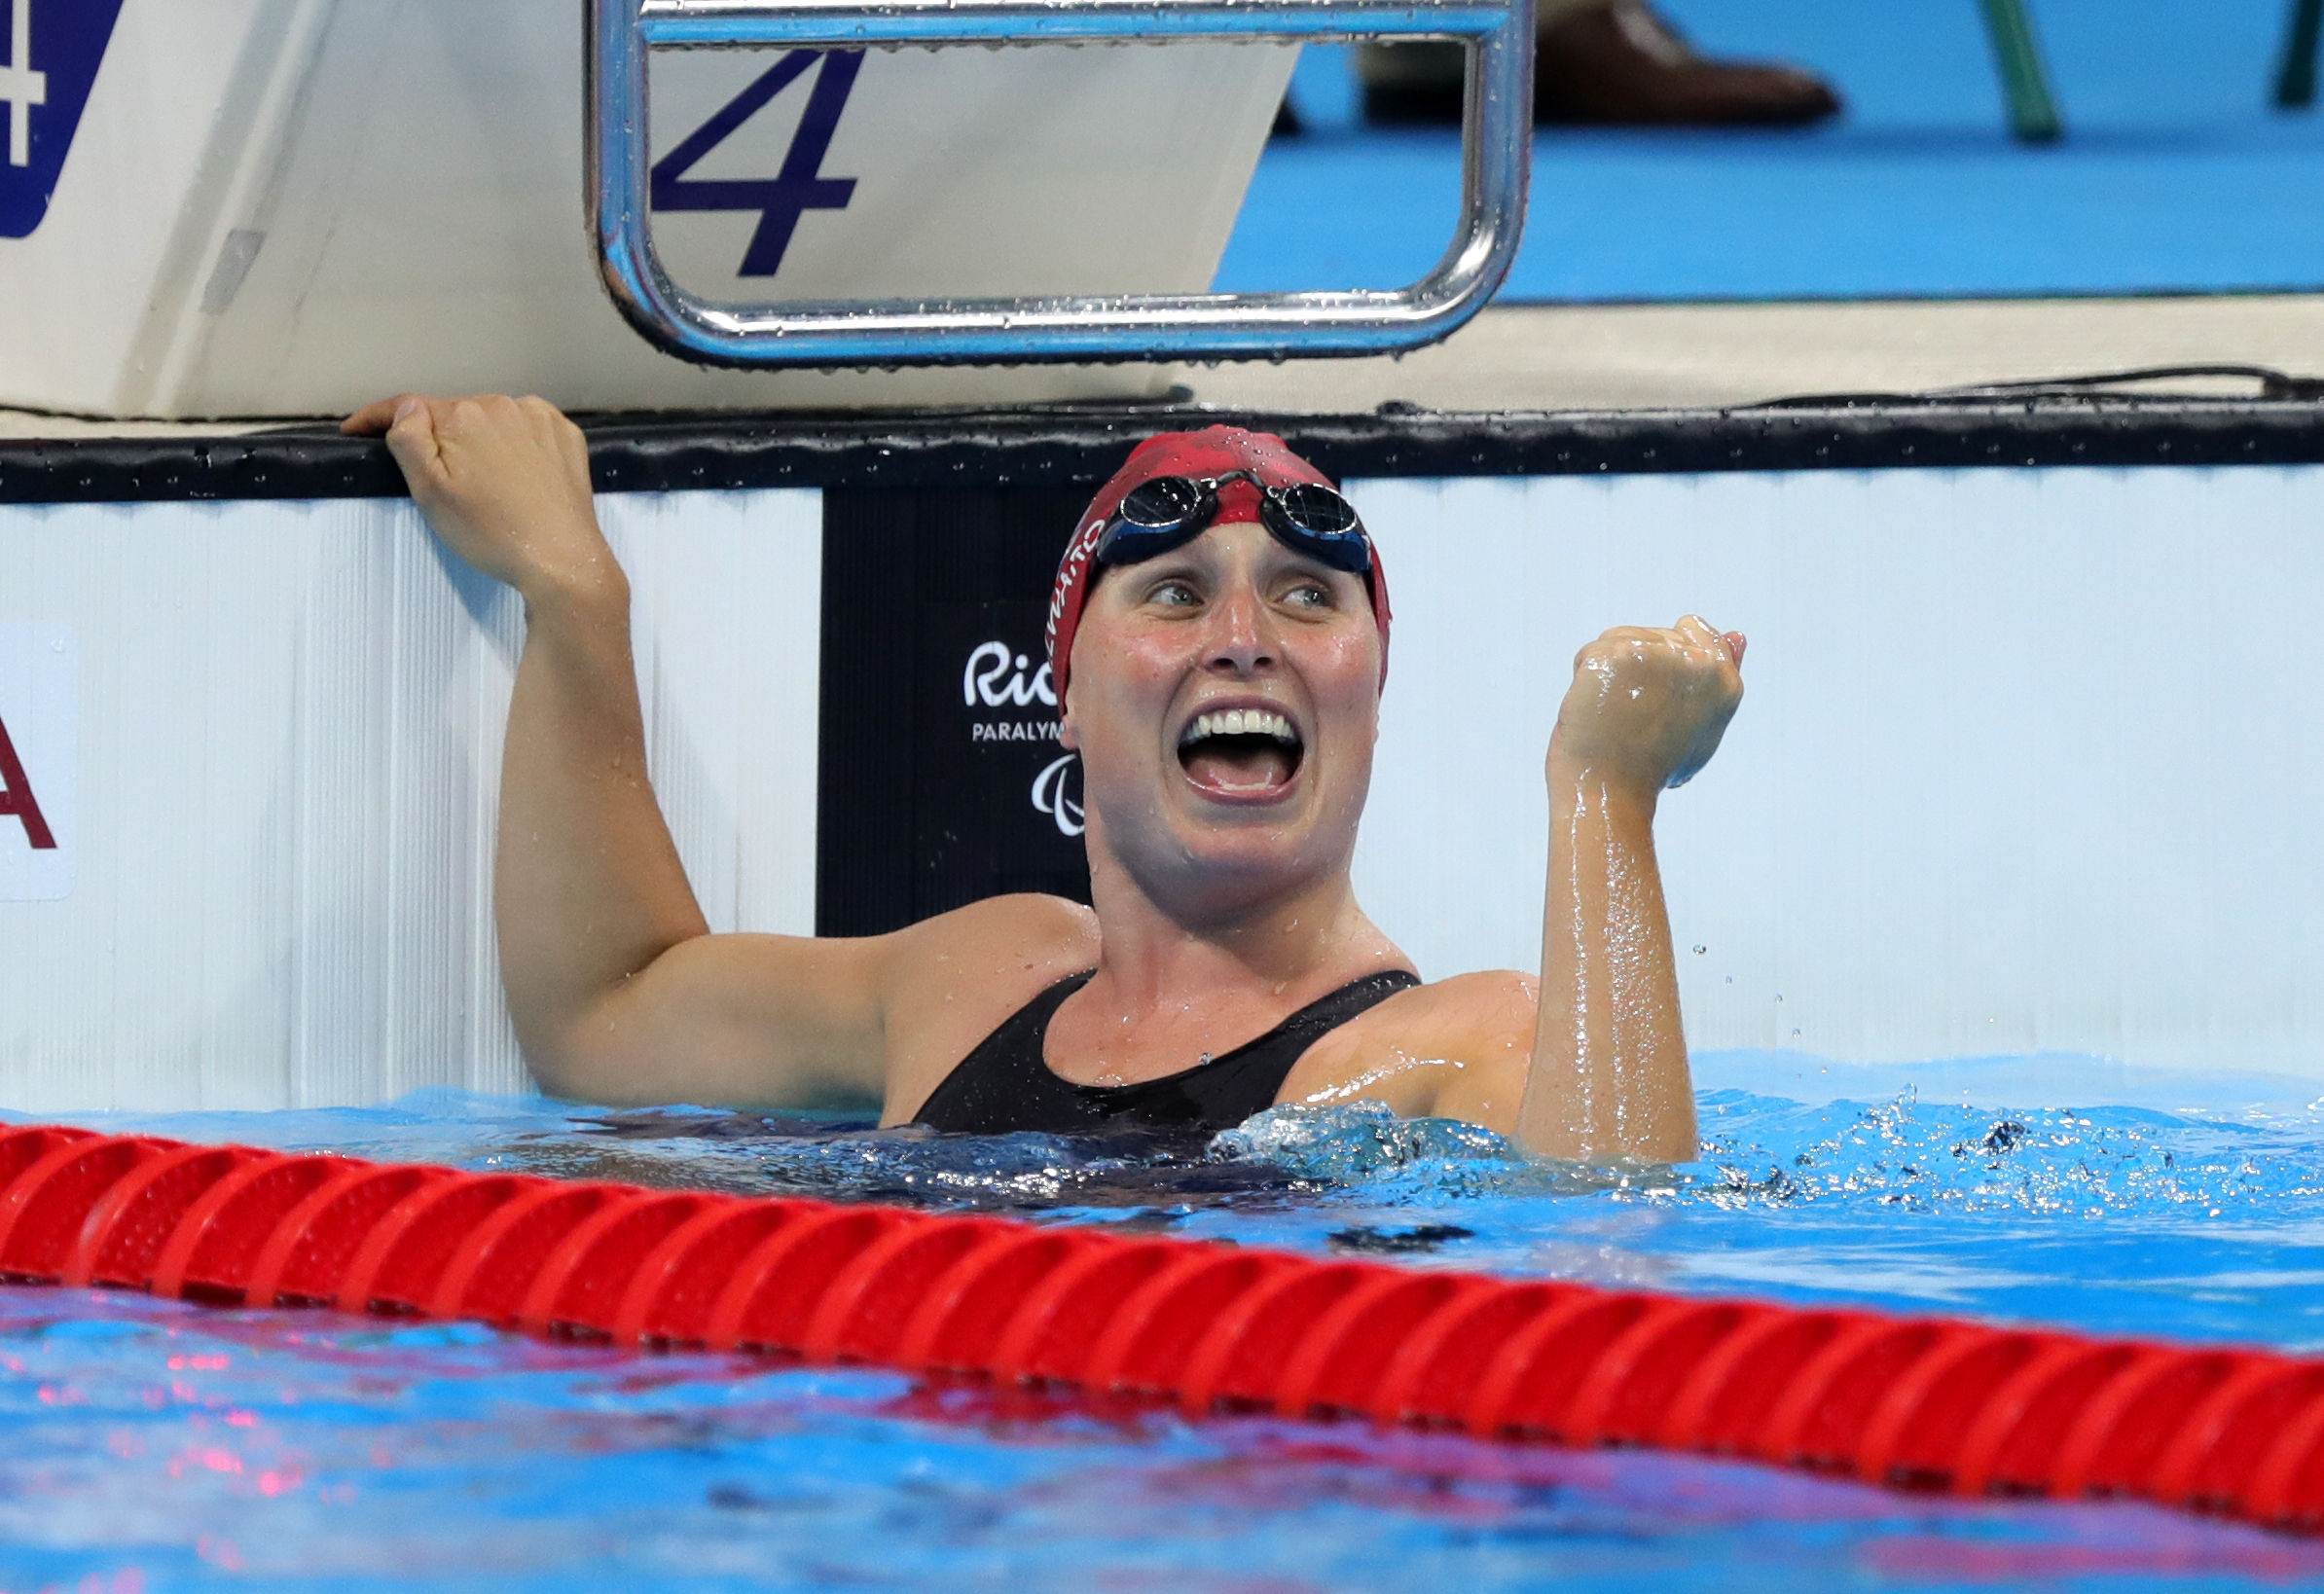 Great Britain's Stephanie Millward celebrates victory following the Women's 4x100m Medley-34pts Final on the ninth day of the 2016 Rio Paralympic Games in Rio de Janeiro, Brazil. PRESS ASSOCIATION Photo. Picture date: Friday September 16, 2016. Ph